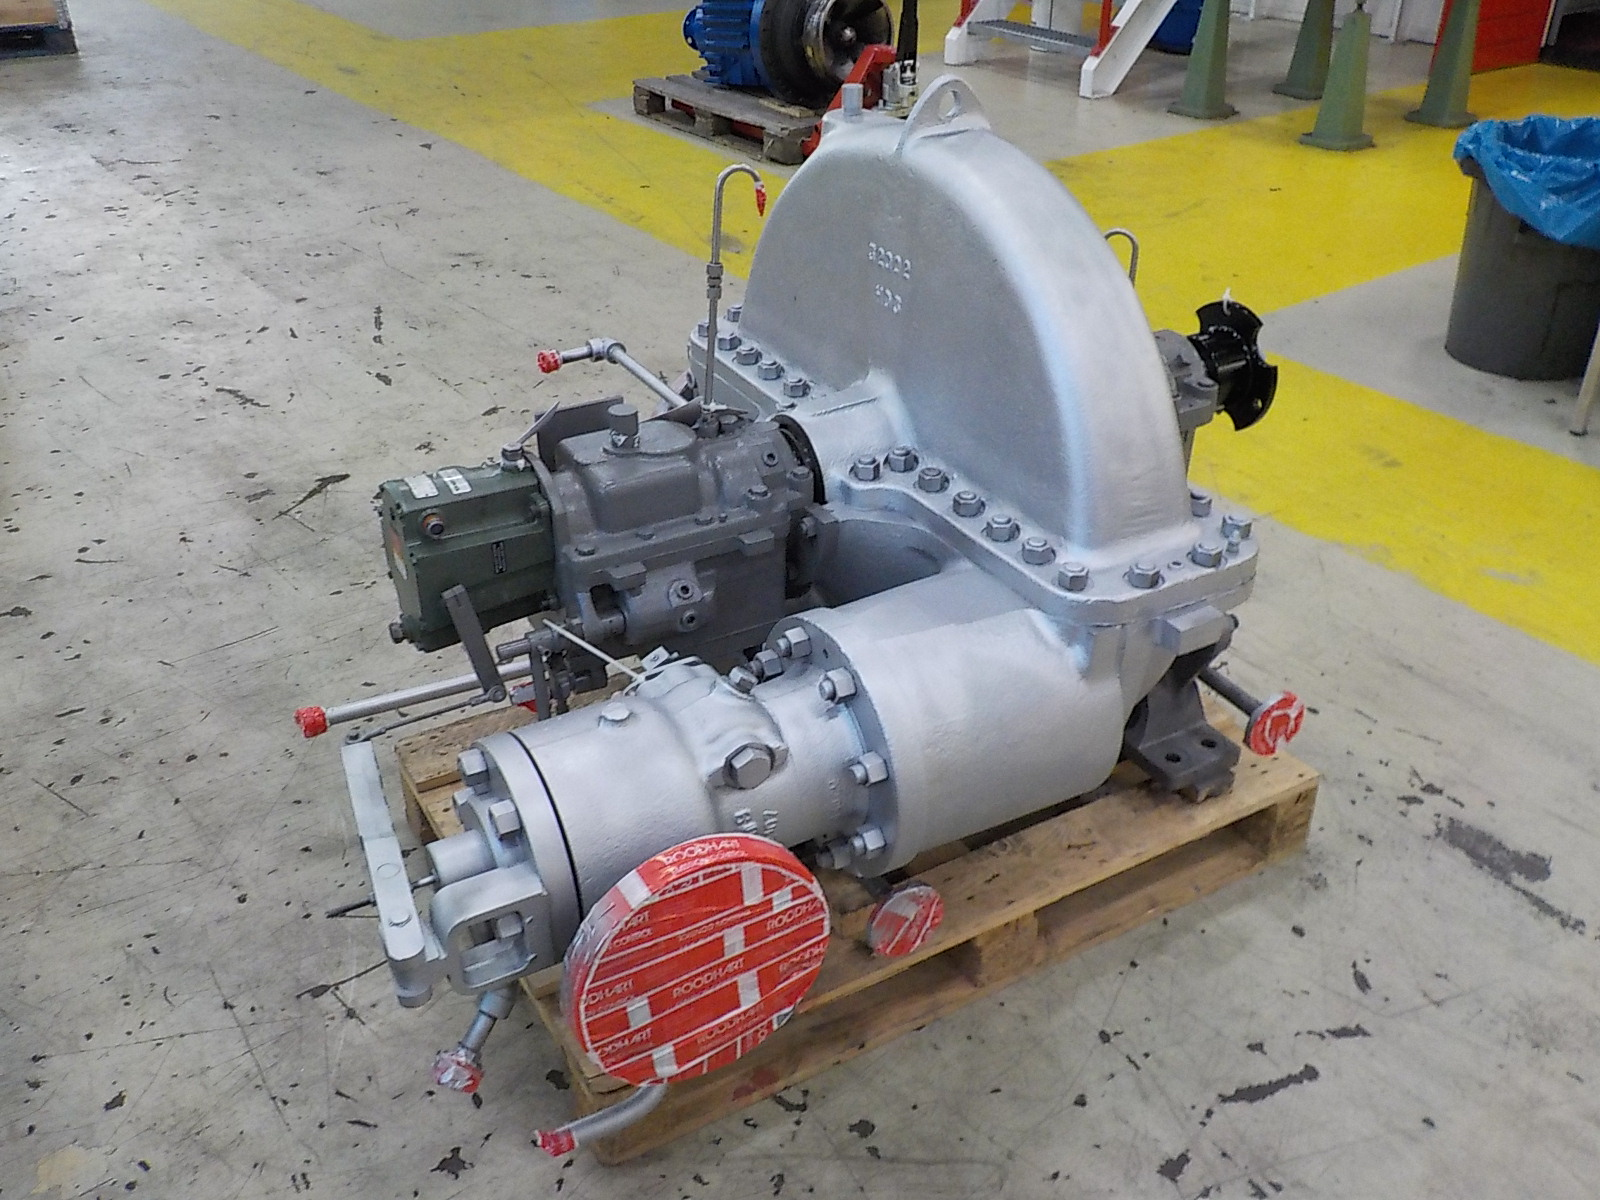 Revisie turbine